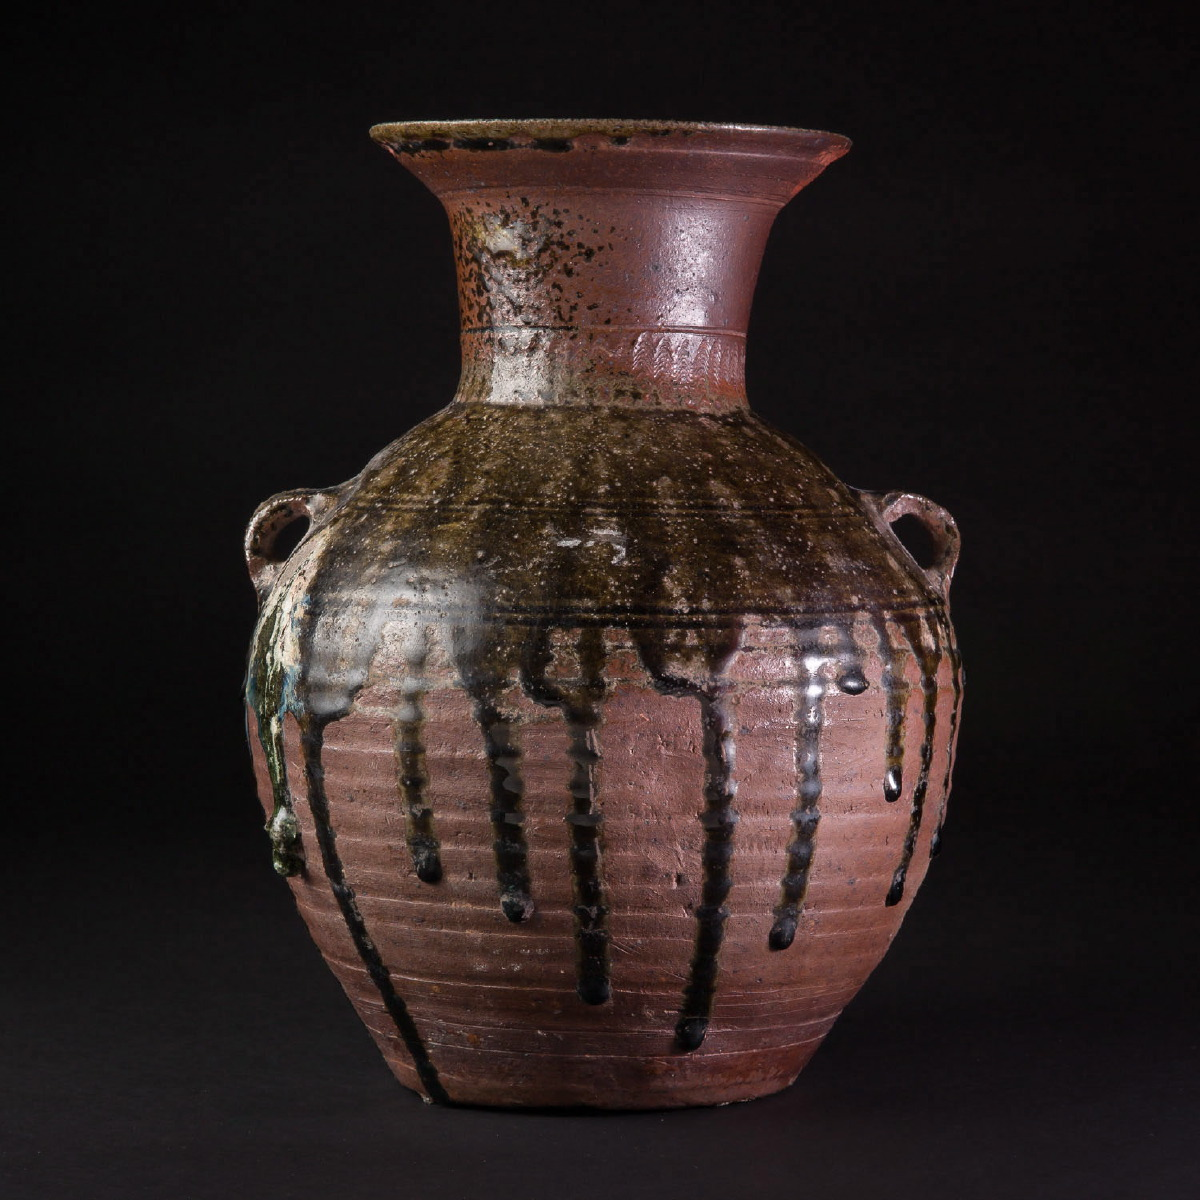 Photo of han-vase-green-glaze-china-archeology-galerie-golconda